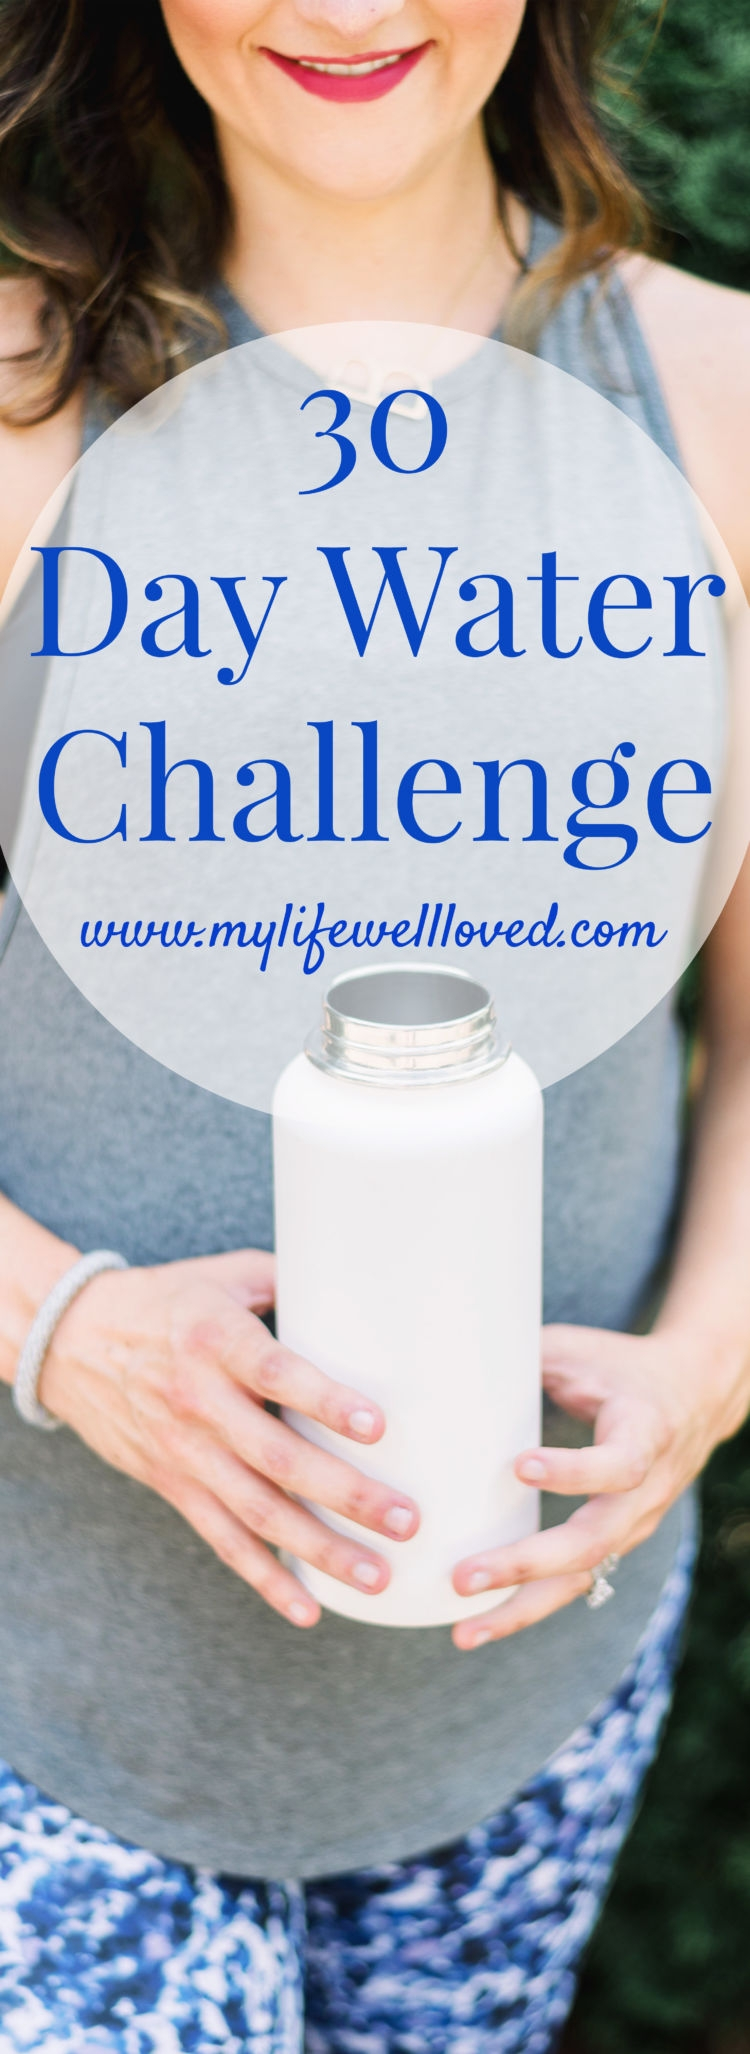 30 day water challenge from Alabama healthy lifestyle blogger Heather of MyLifeWellLoved.com // #WaterChallenge